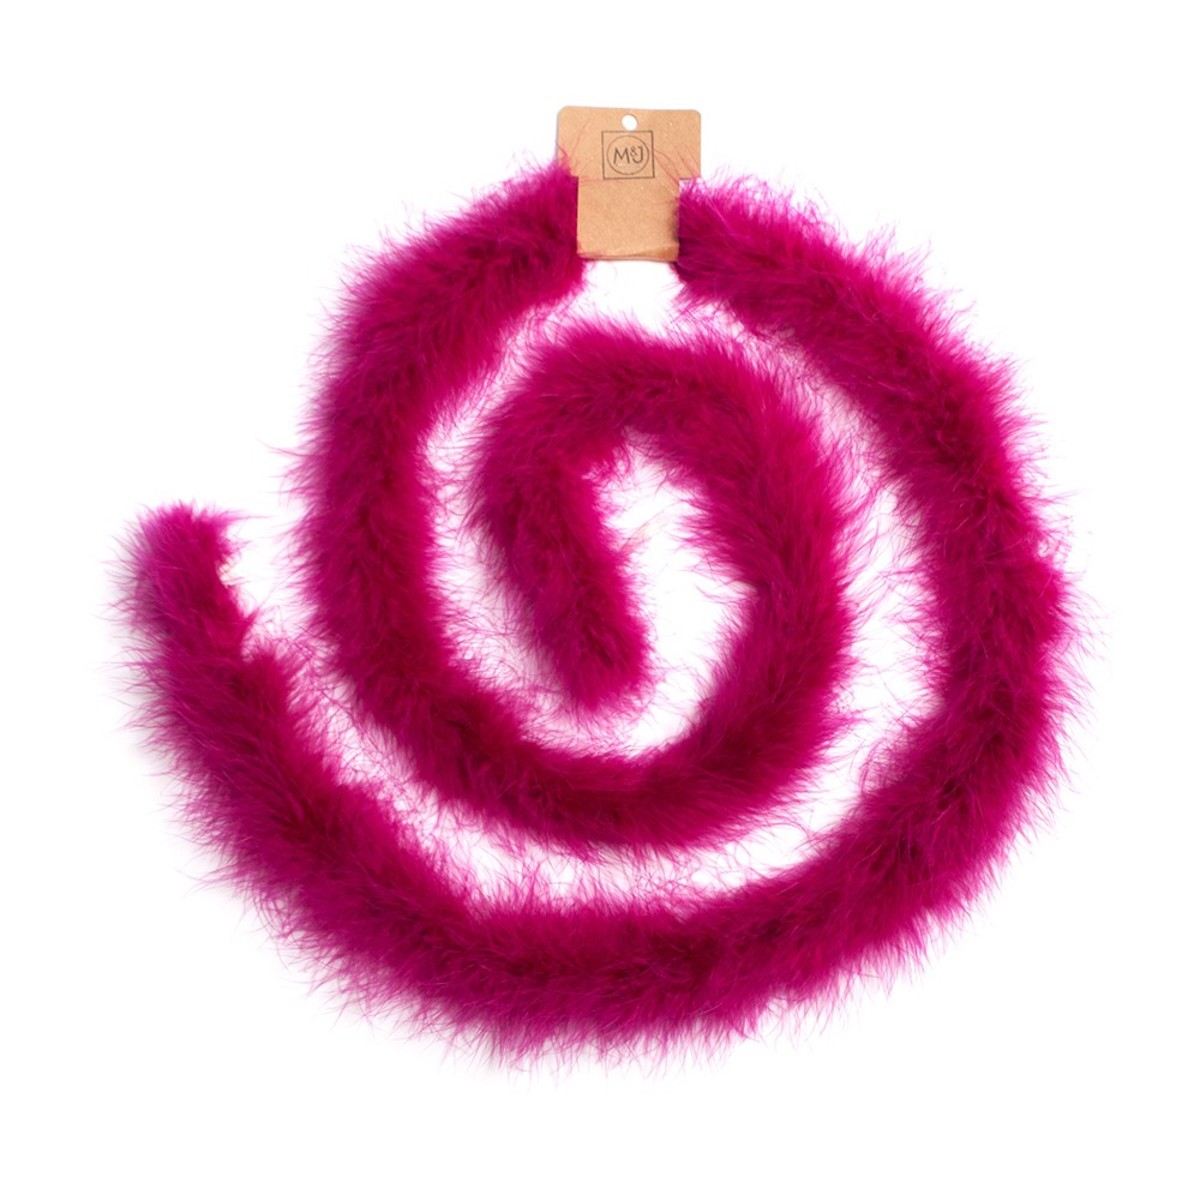 Maribou feather boa, $13.98, available at M&J Trimmings